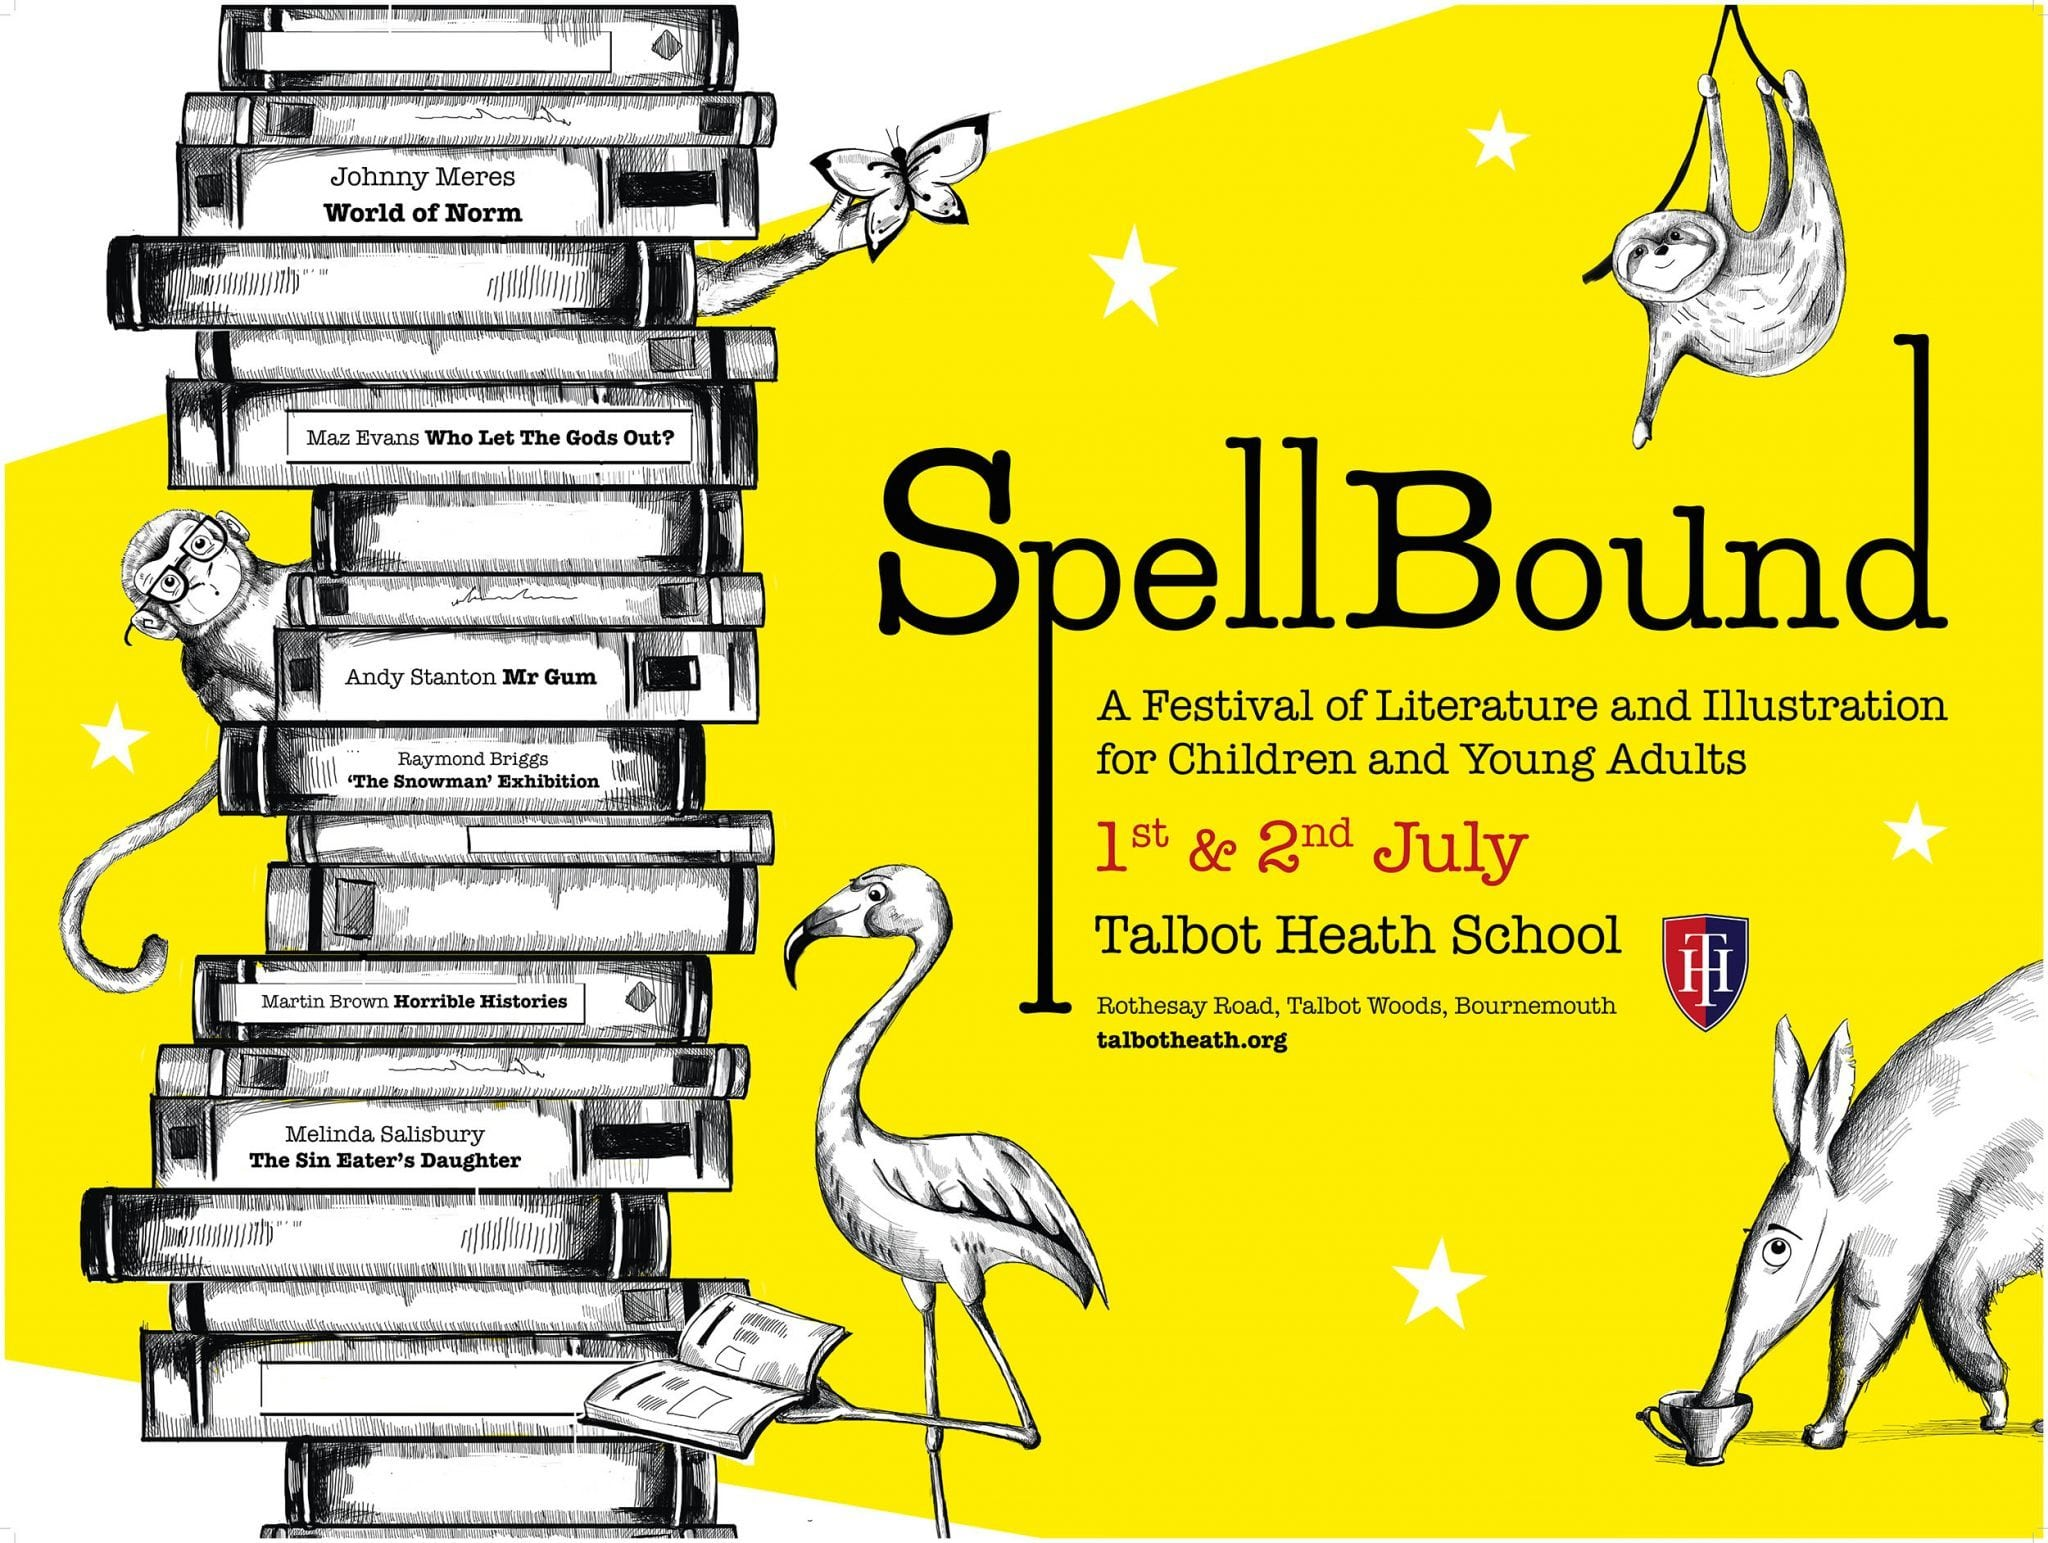 AUB collaborate with Talbot Heath School to create SpellBound; a Festival of Literature and Illustration for Children and Young Adults